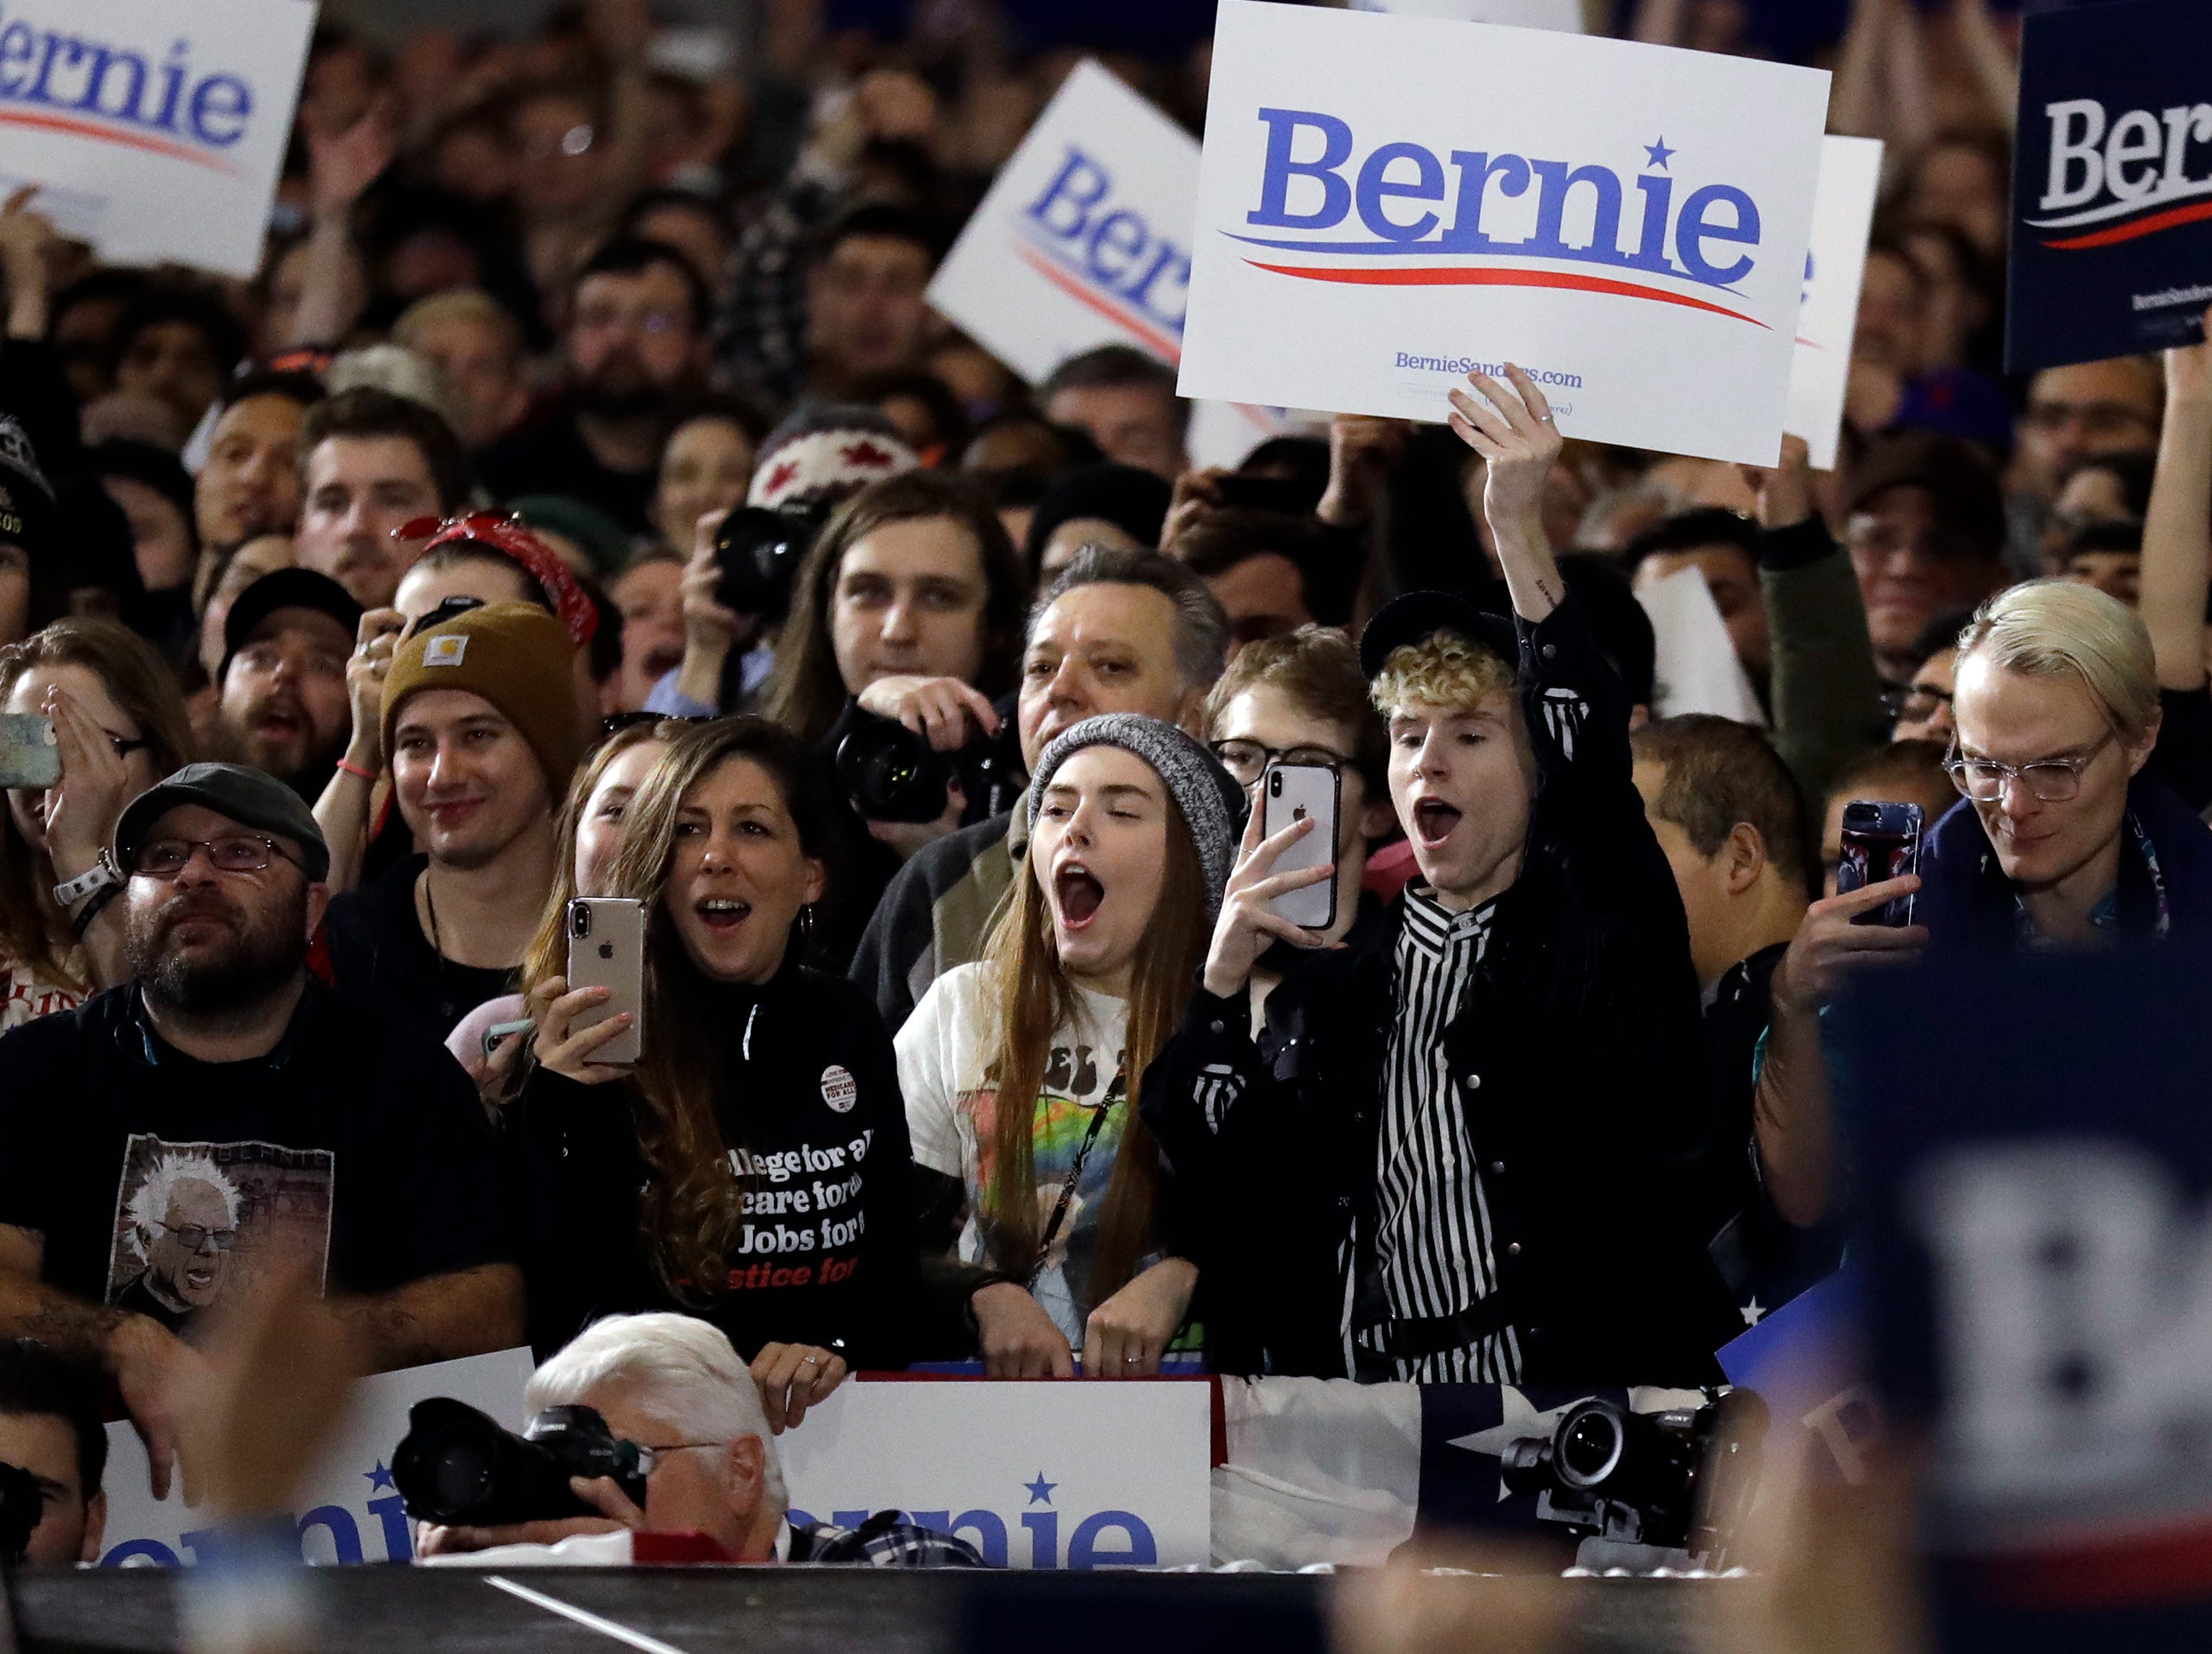 Supporters react as they listen to Sen. Bernie Sanders, I-Vt., during his 2020 presidential campaign at Navy Pier in Chicago, Sunday, March 3, 2019. Over the next several weeks, Sanders will travel to Iowa, New Hampshire, South Carolina, Nevada, and California. He will then return to Burlington, Vt., for the official launch of his campaign.